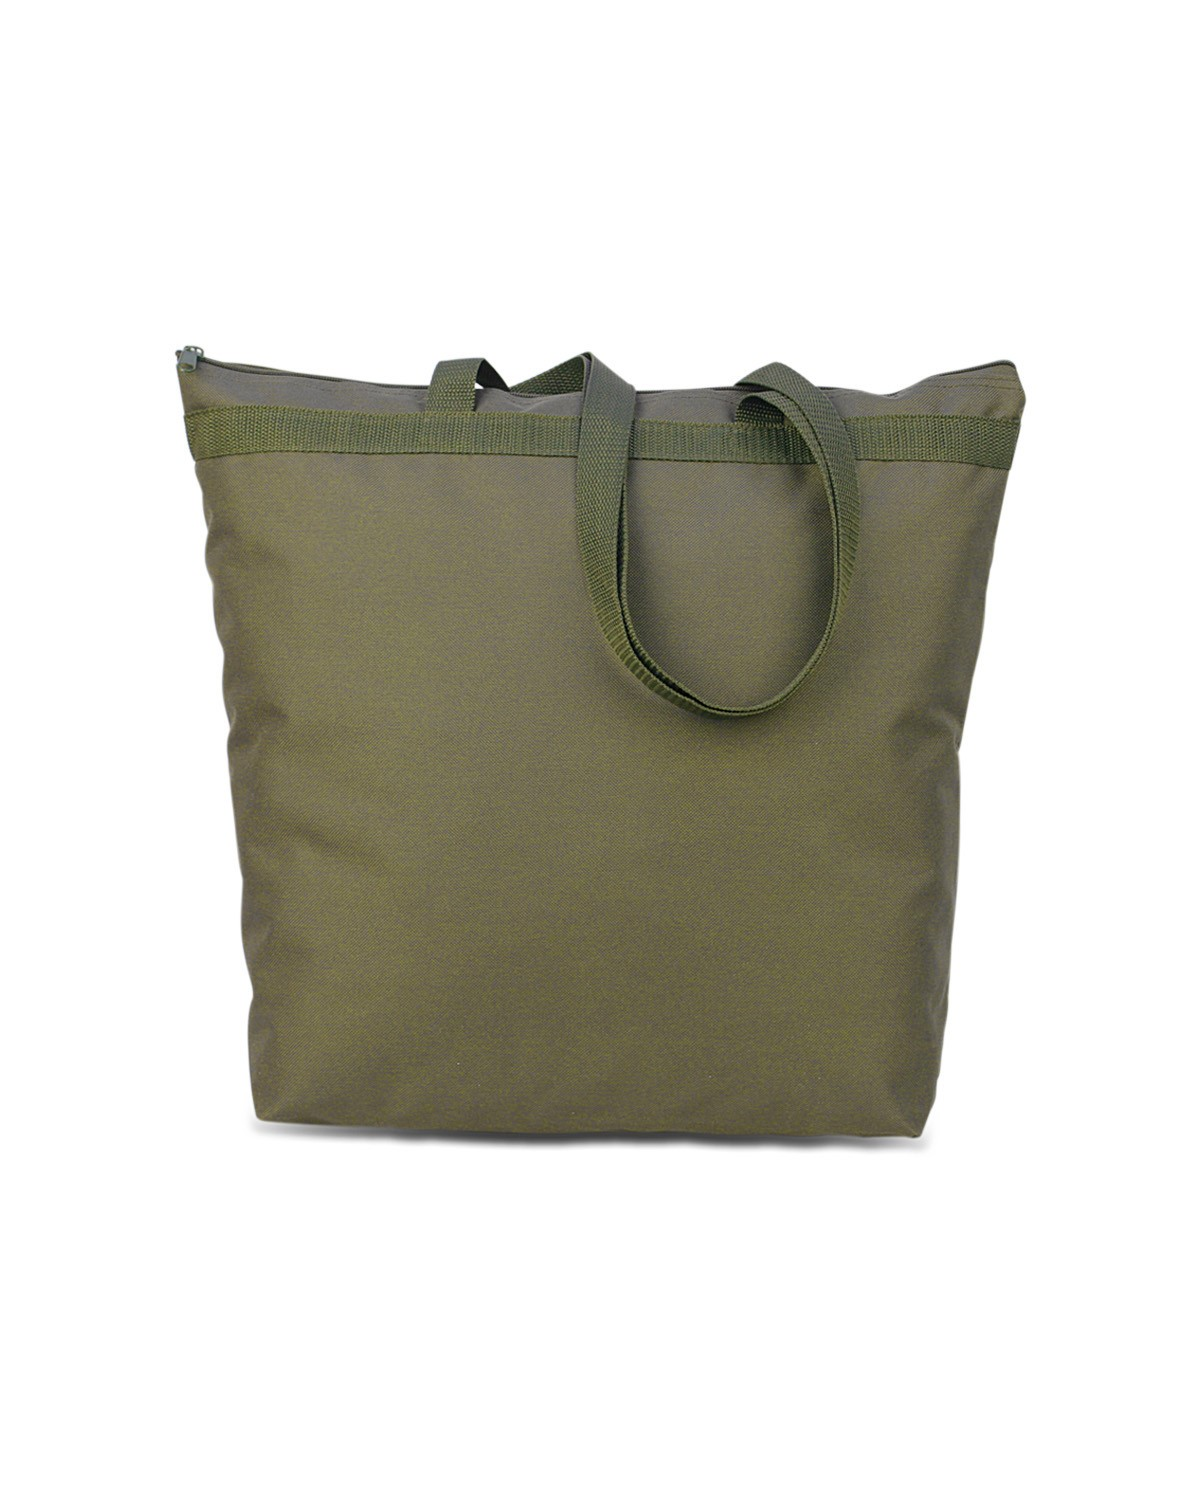 8802 Liberty Bags KHAKI GREEN